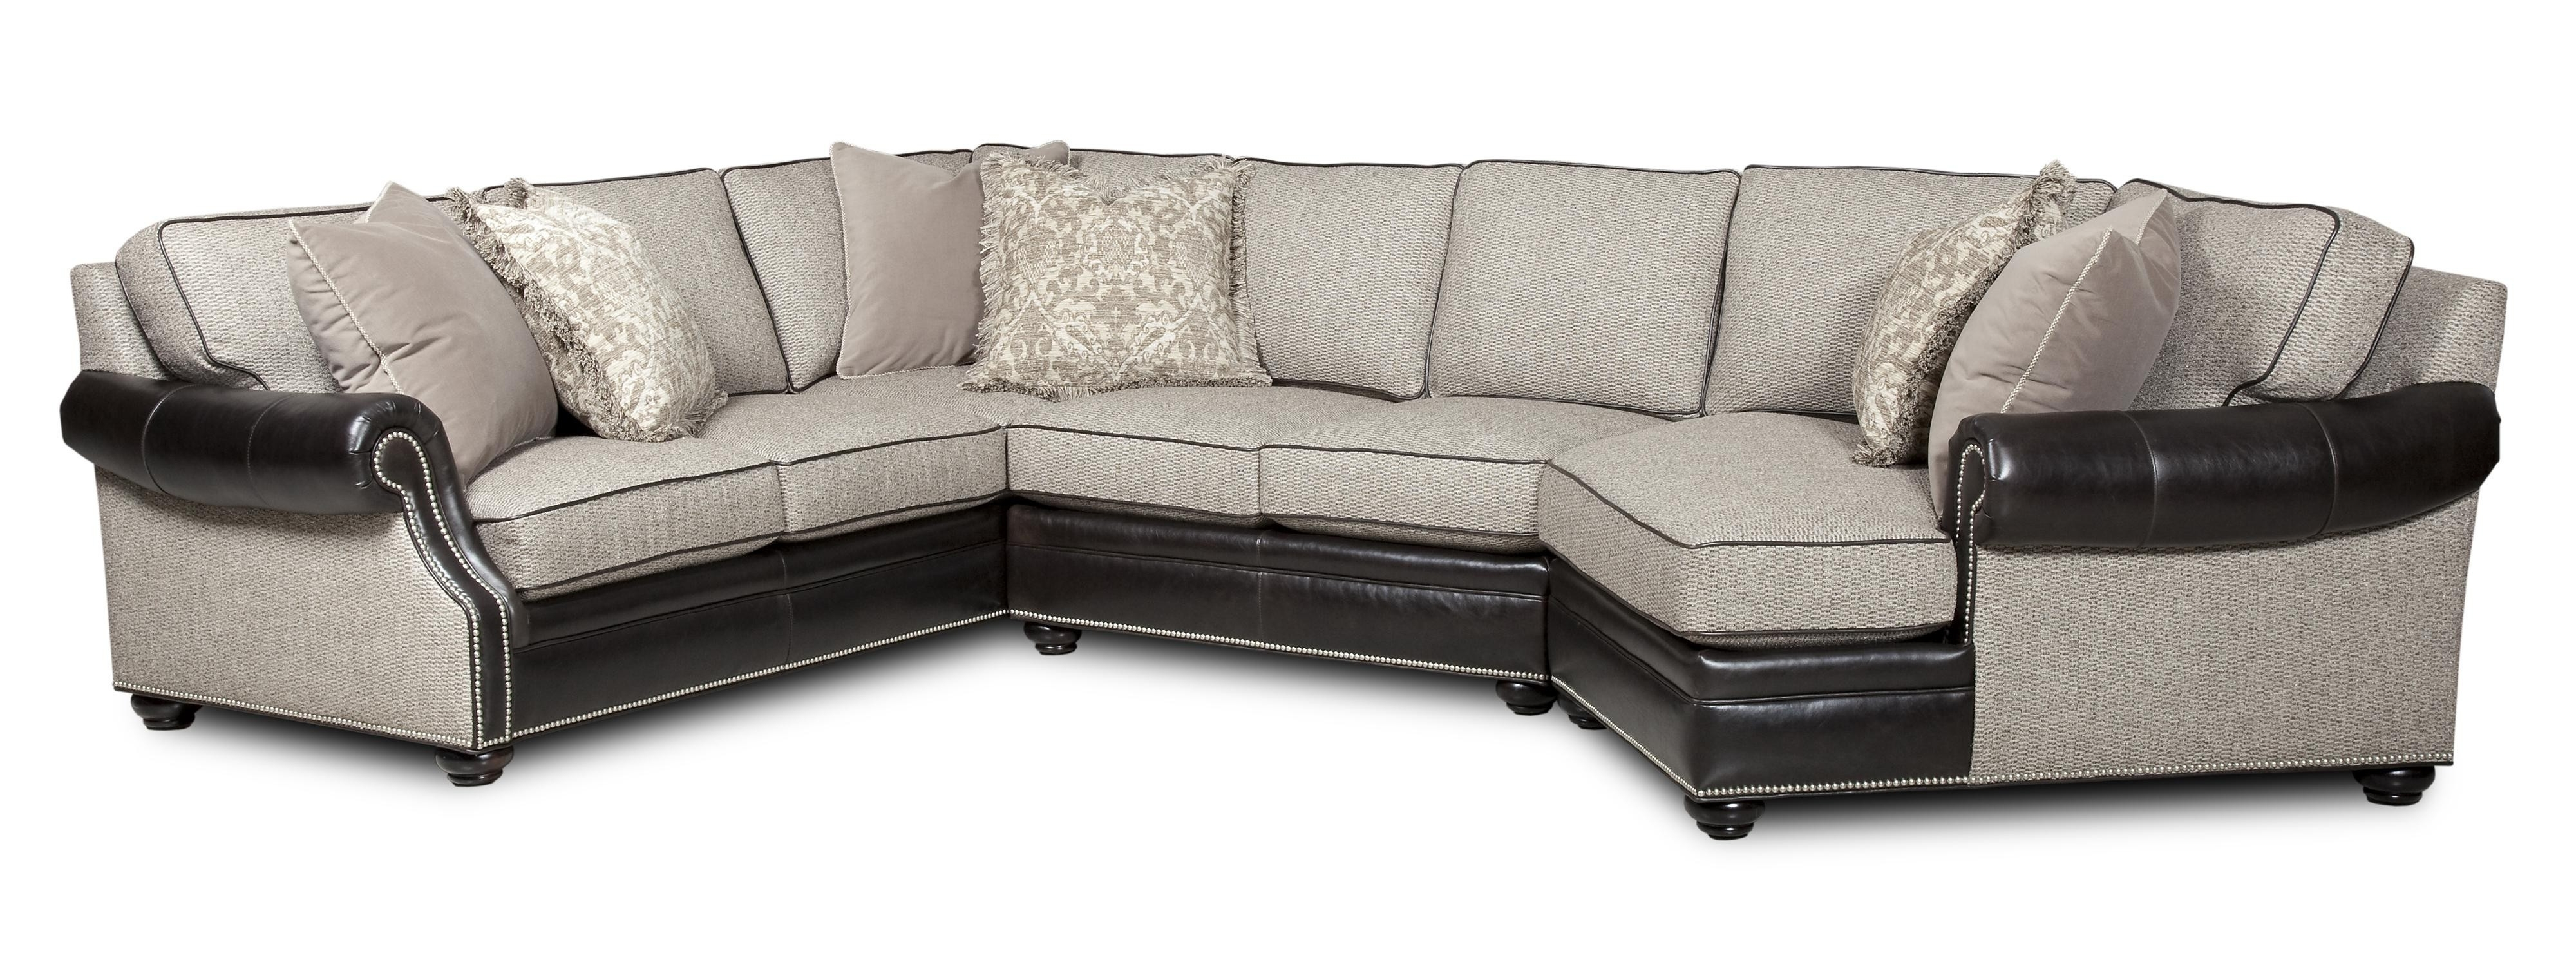 Most Recent Furniture : Ethan Allen Used Furniture Craigslist Elegant Tr E2 Inside Kelowna Sectional Sofas (View 15 of 20)